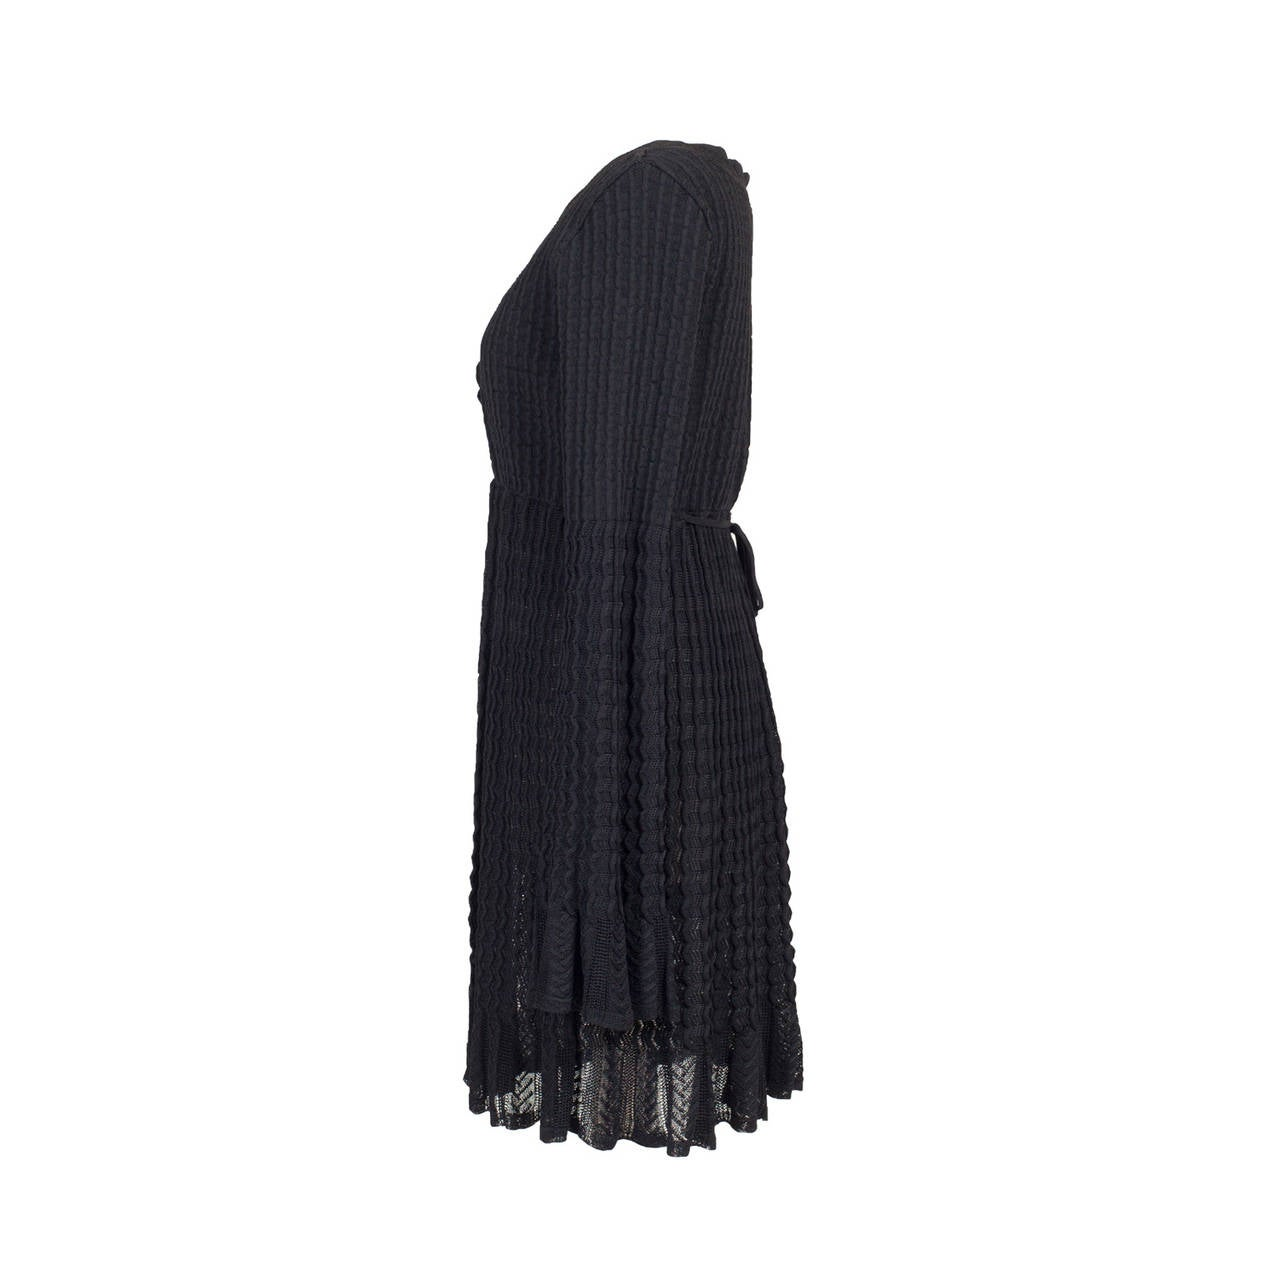 Alaia Black Knit Top Dress 1992 4